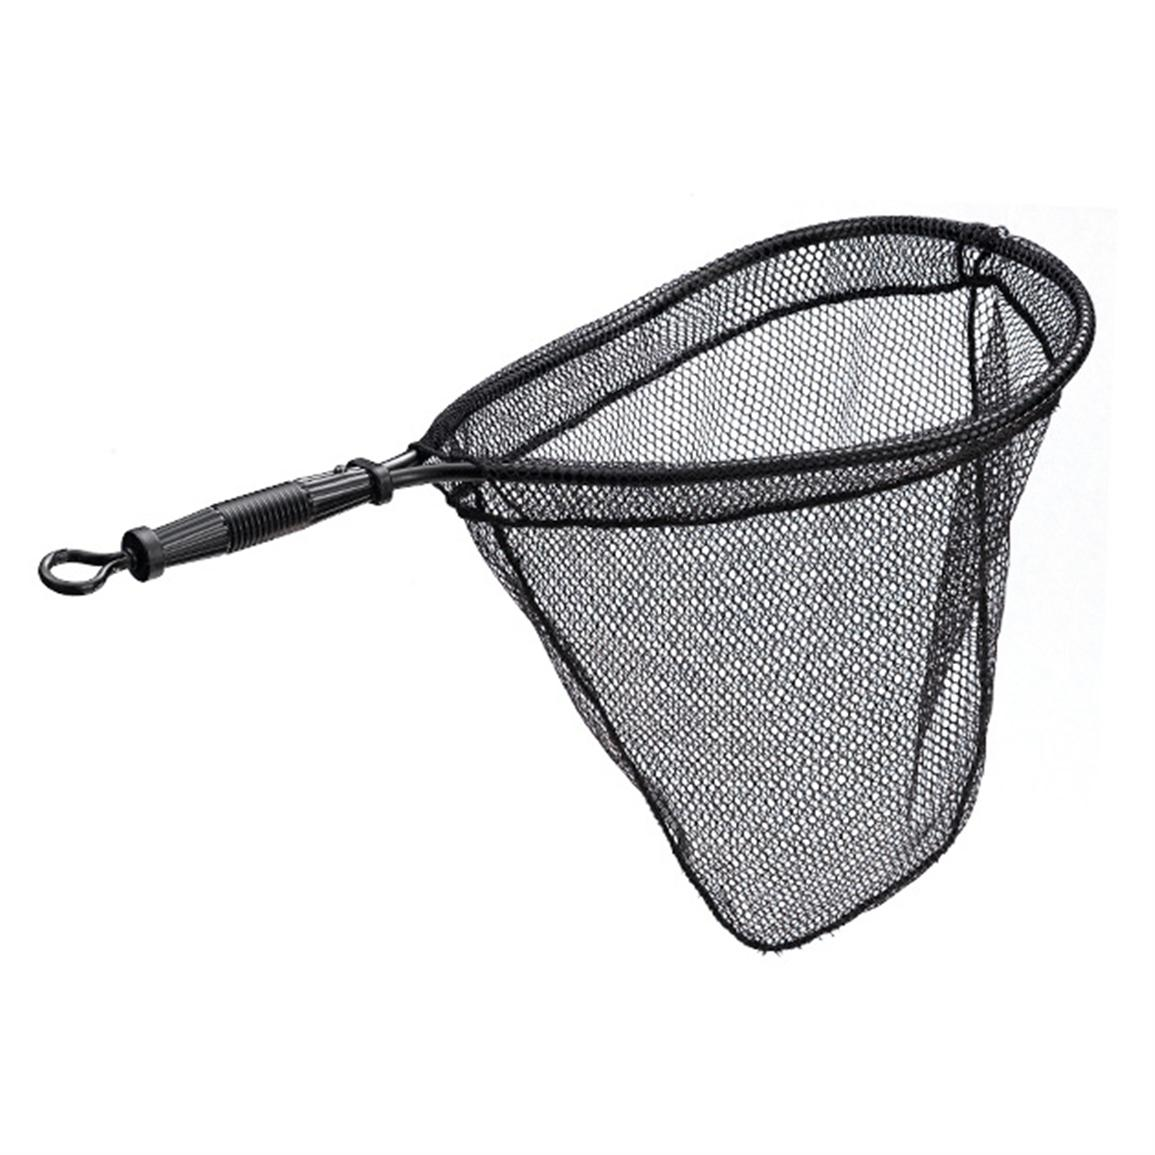 Ego trout landing net 224604 fishing nets at sportsman for Ego fishing net